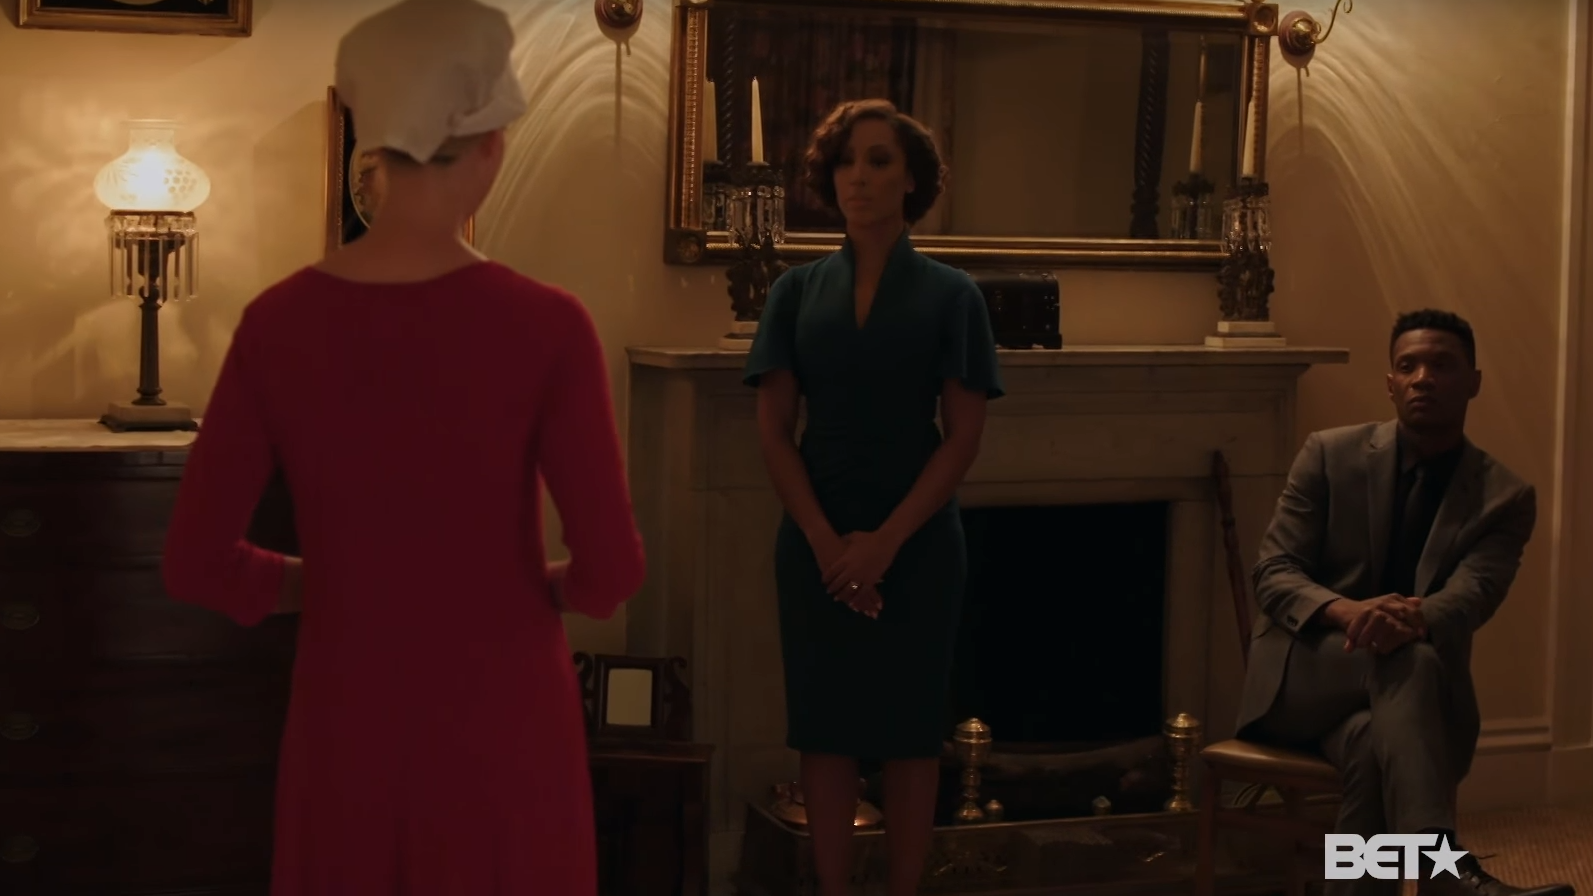 Microaggressions Are Banned In This Savvy 'The Handmaid's Tale' Parody